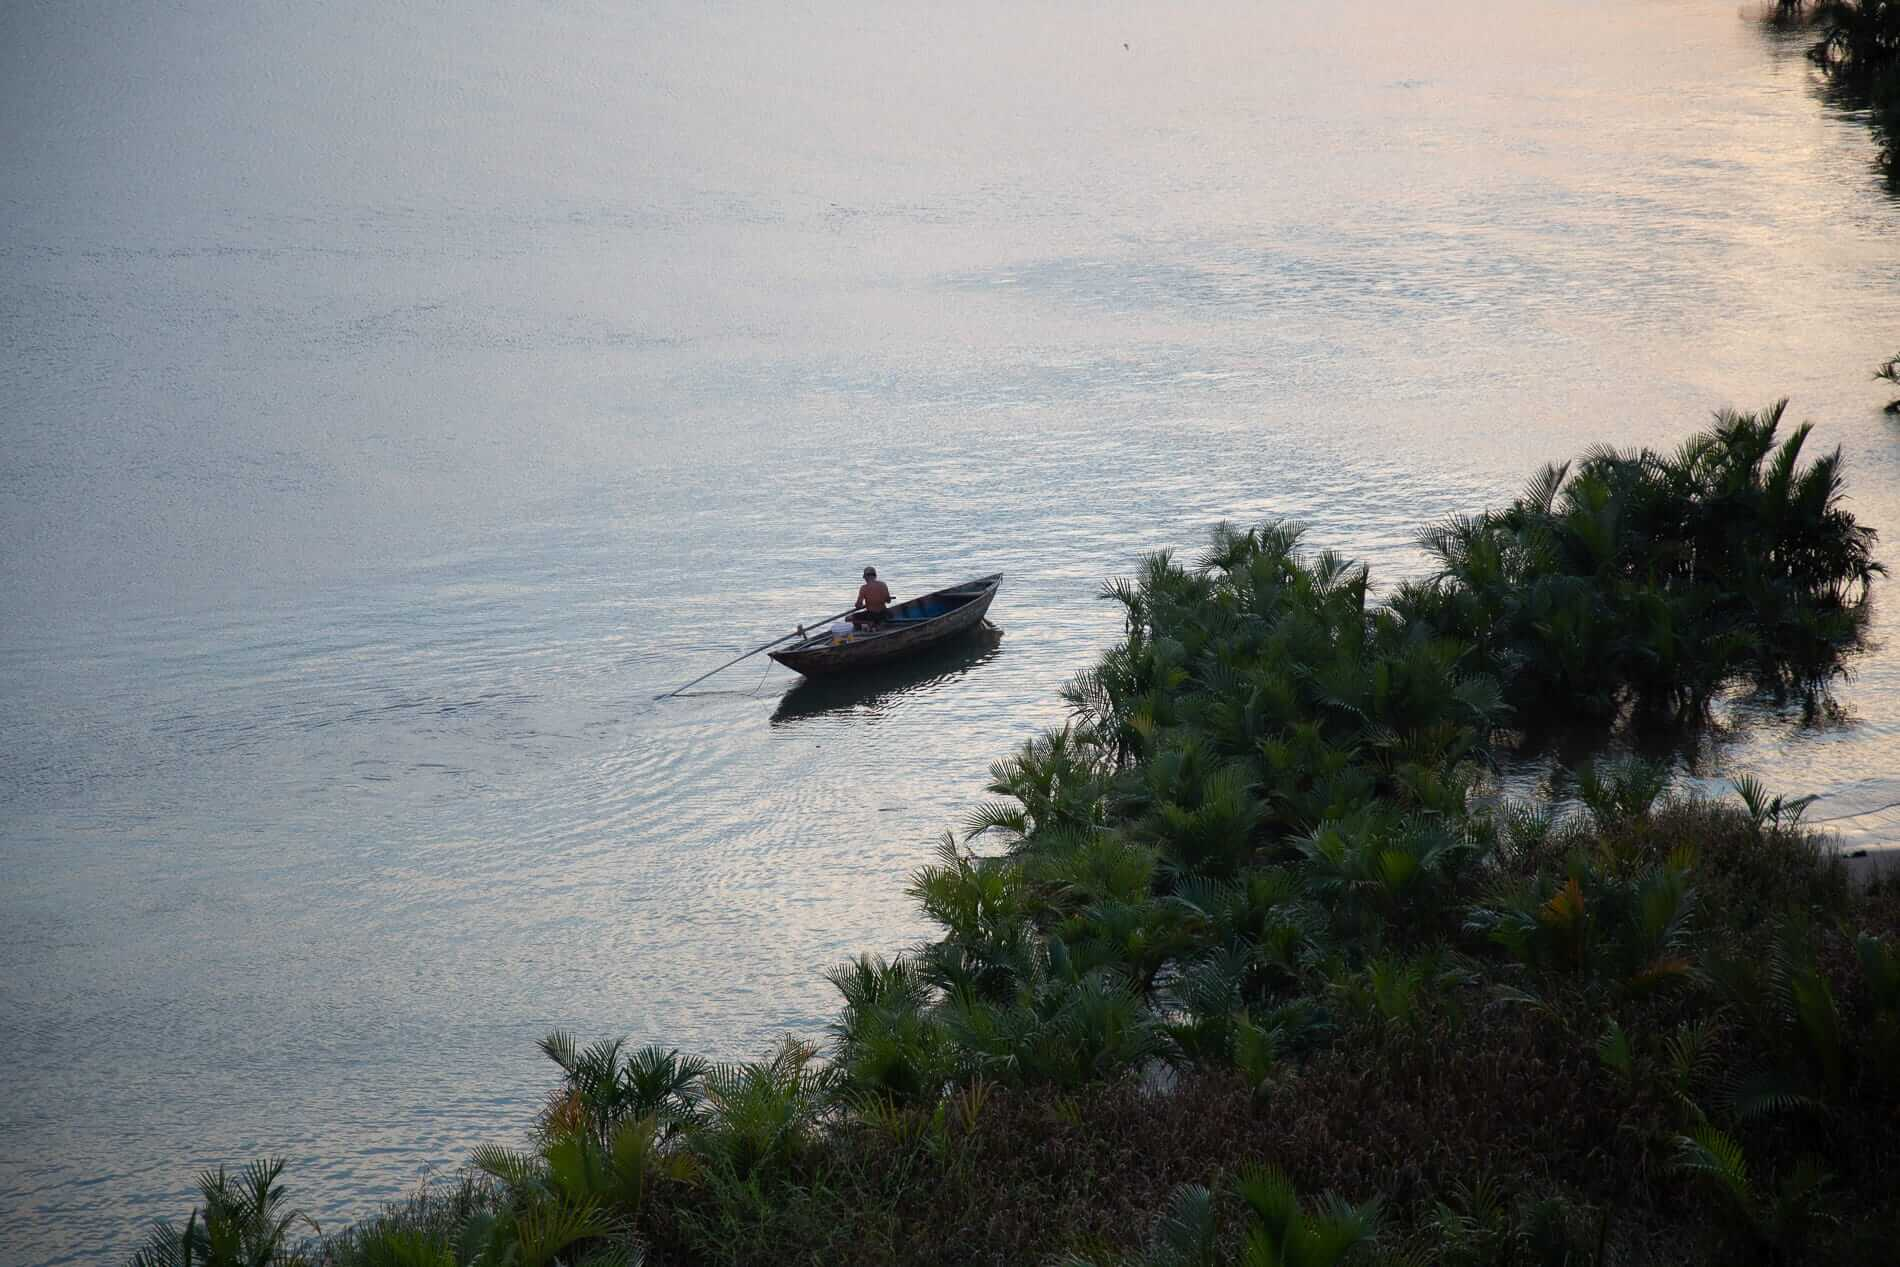 The rivers and coastline of Hoi An provide quality seafood to Hoi An's best restaurants